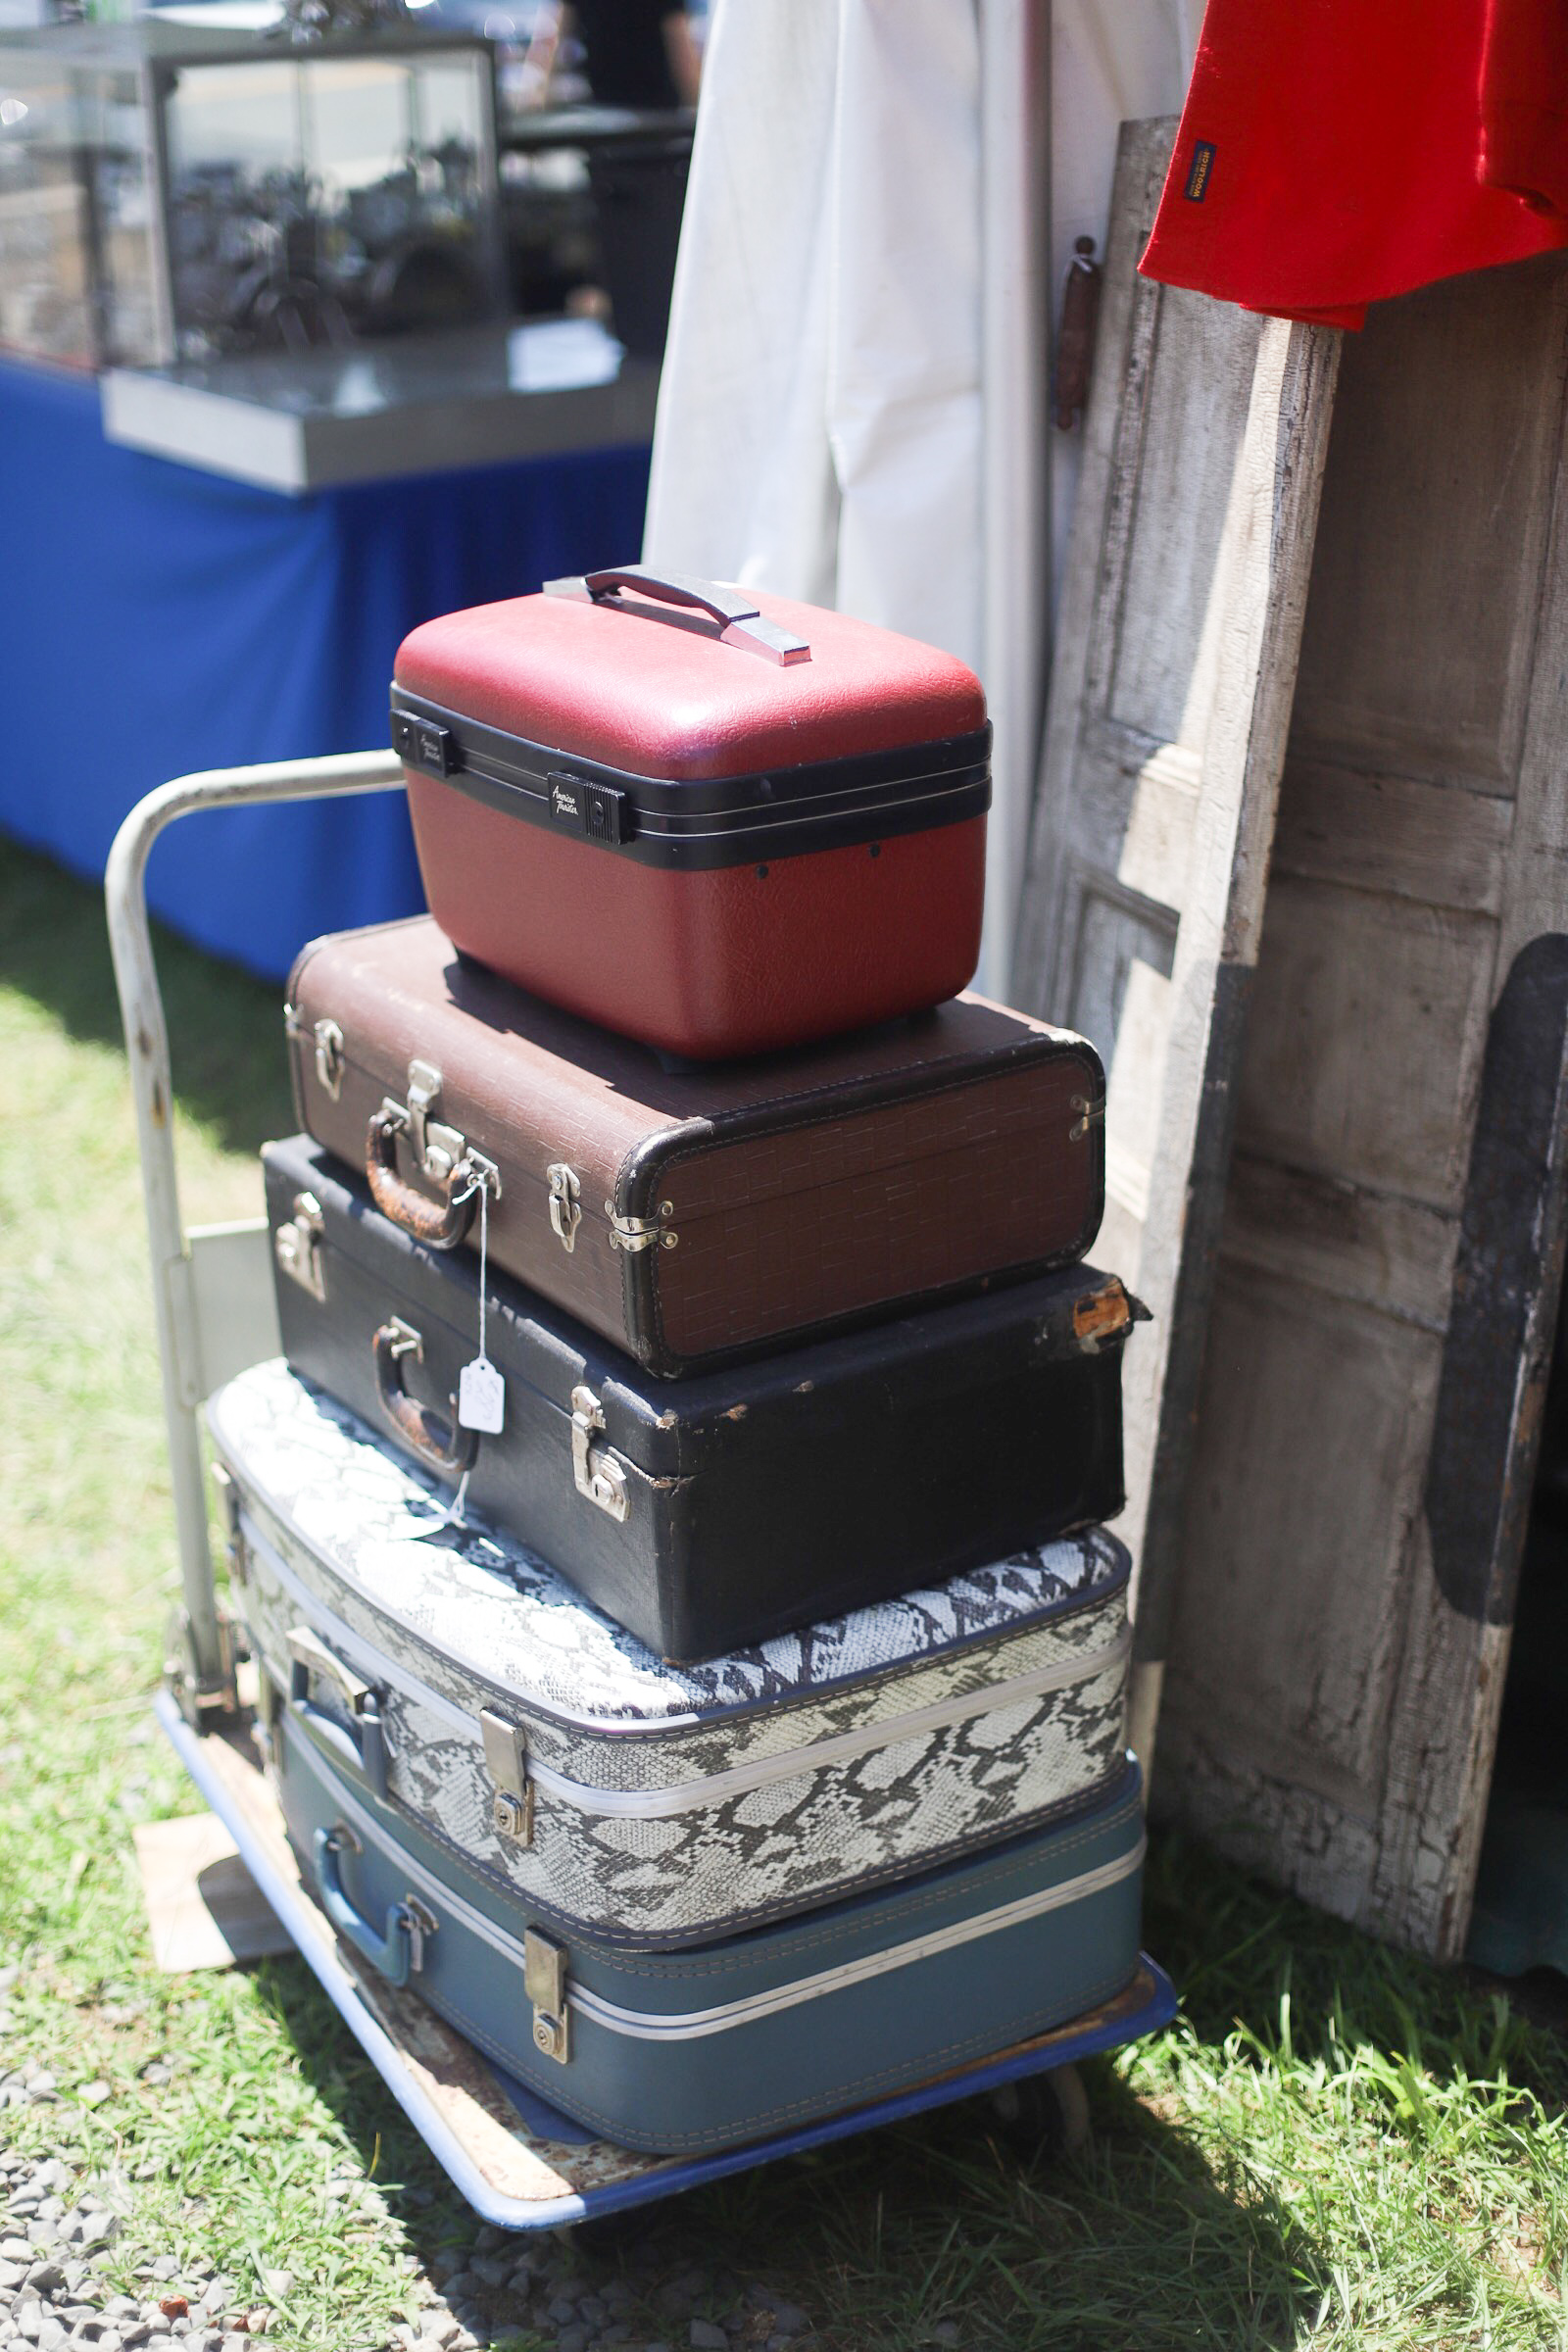 A guide to the Brimfield Antique Show and Flea Market - the largest of its kind in the country - and how to score the best vintage and thrift finds there! | glitterinc.com | @glitterinc